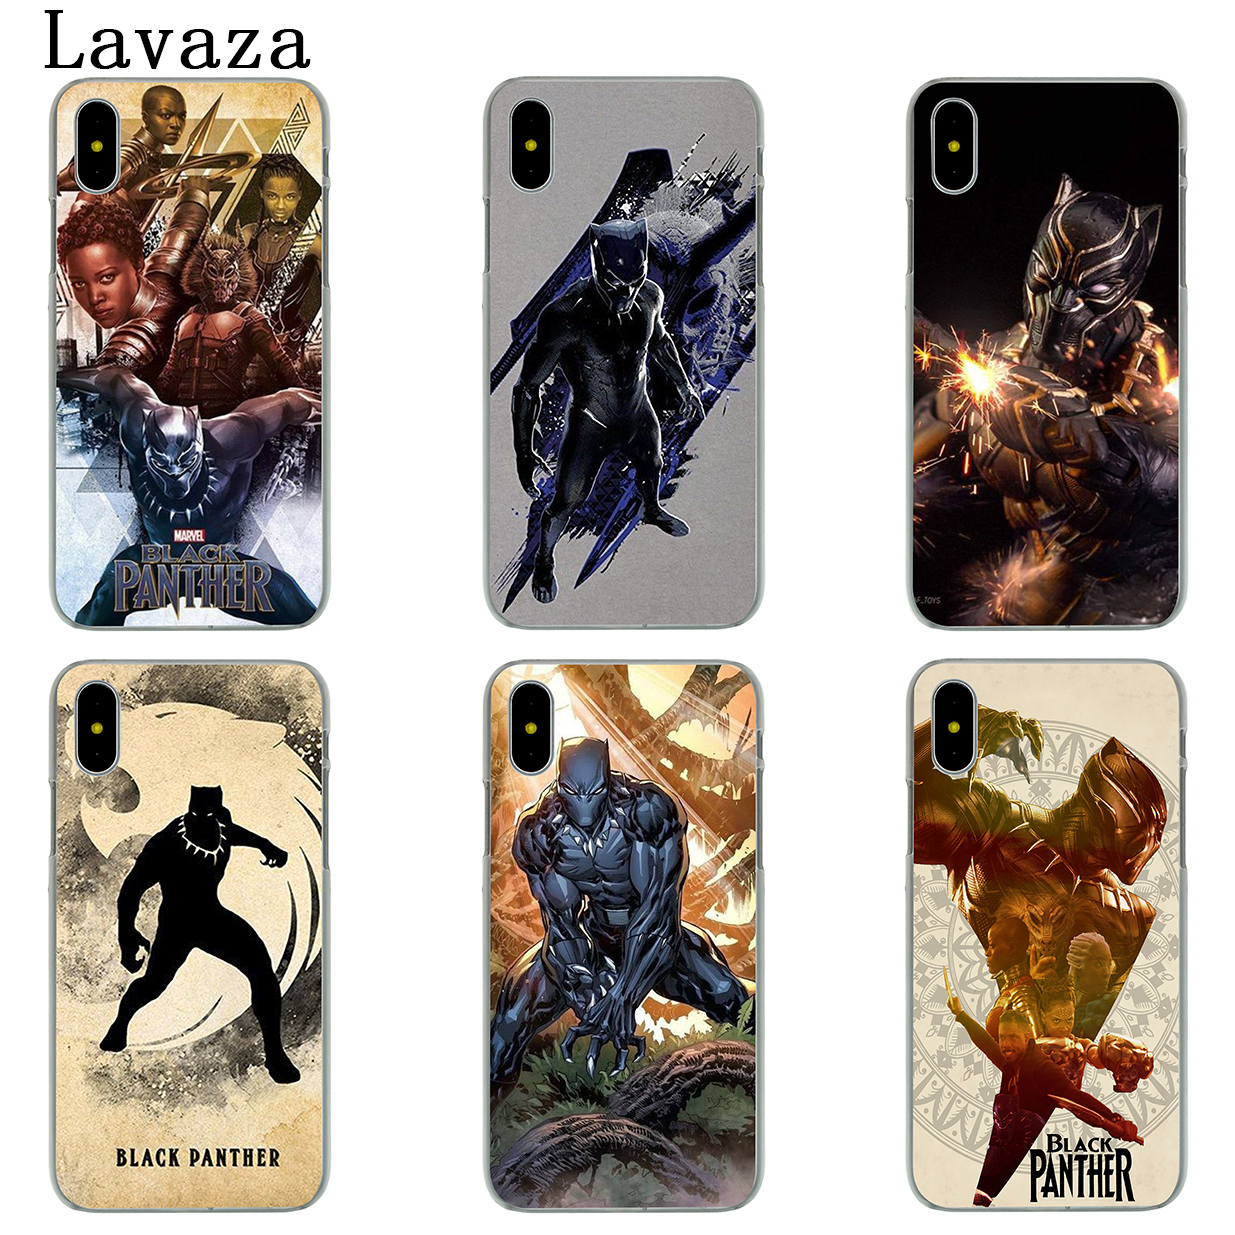 coque iphone 8 plus black panther